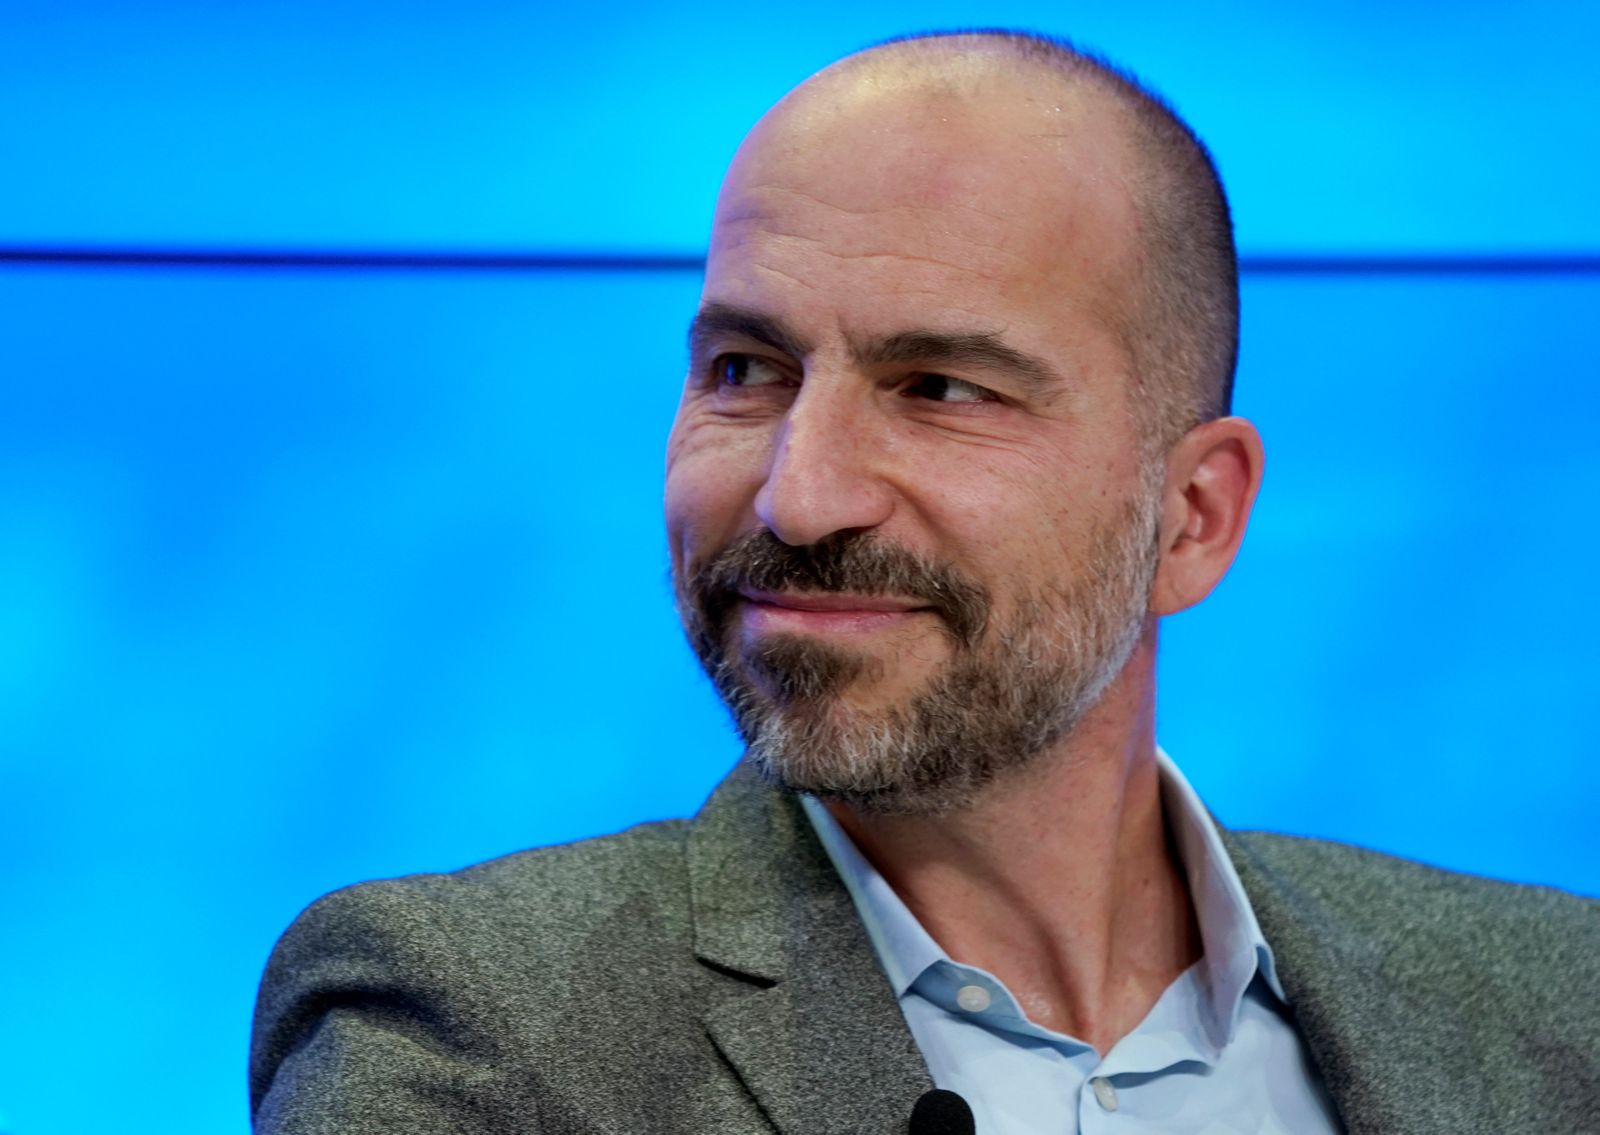 Dara Khosrowshahi, Chief Executive Officer of Uber Technologies, attends the World Economic Forum (WEF) annual meeting in Davos